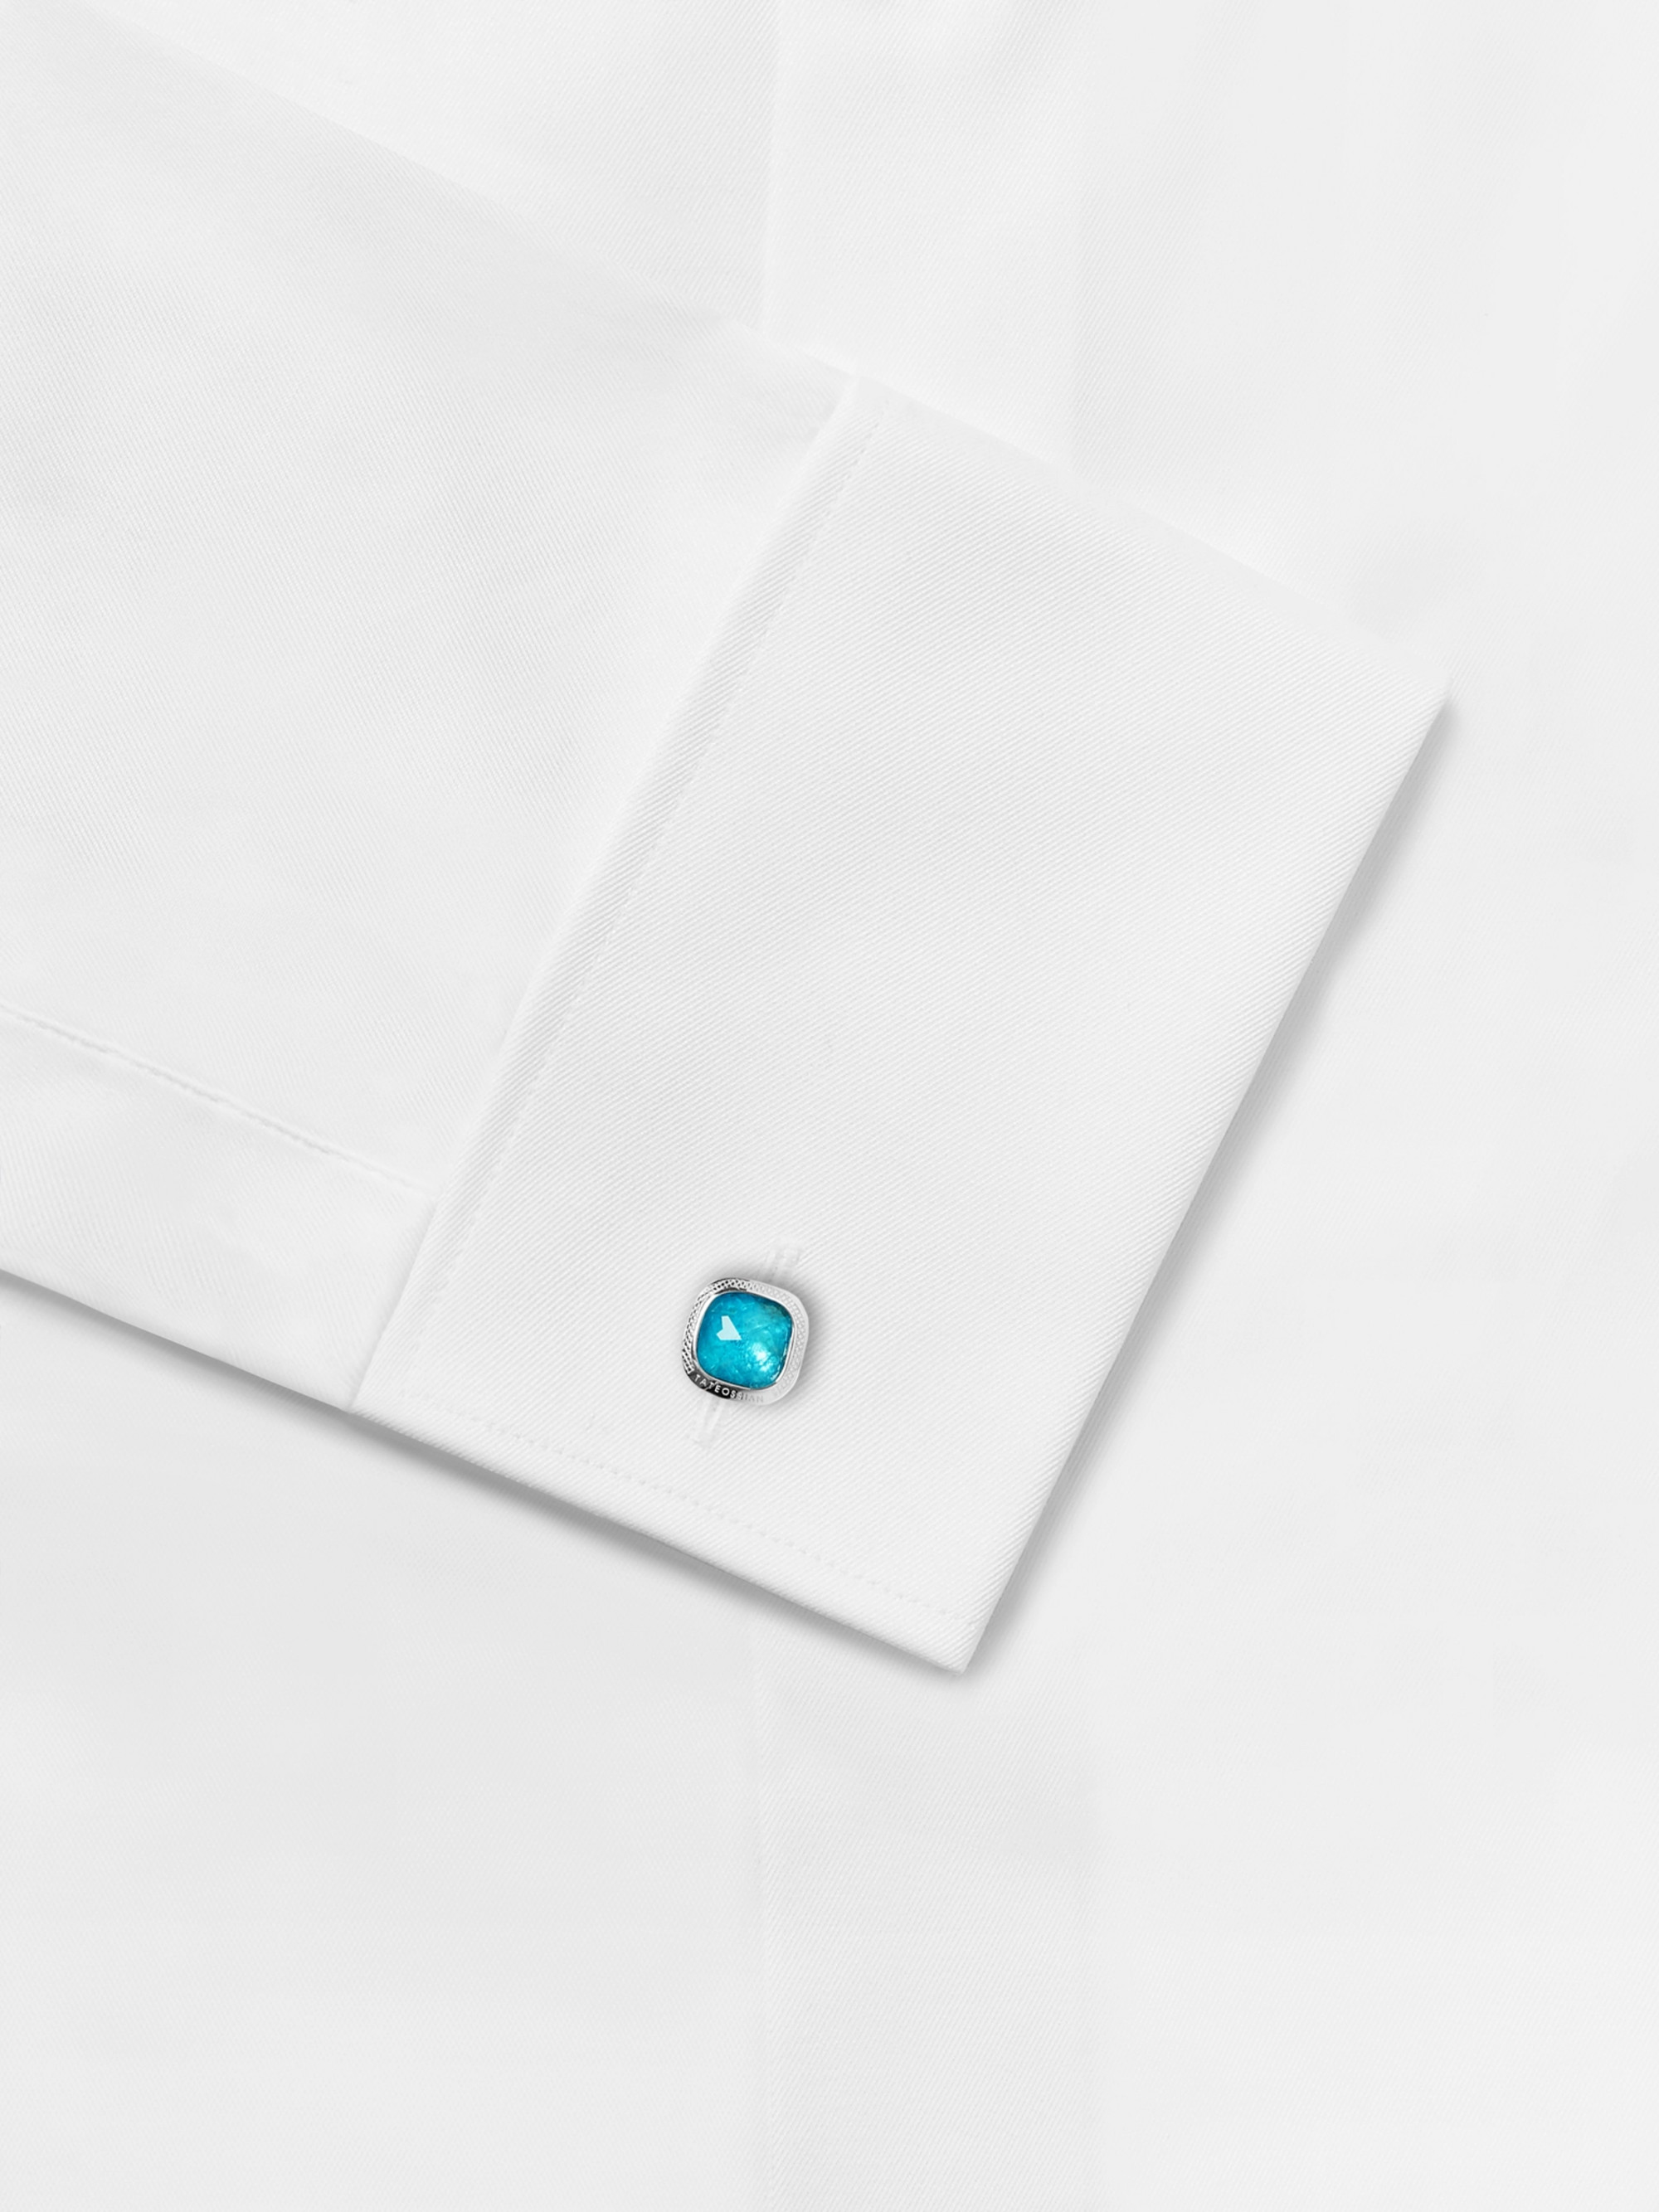 TATEOSSIAN Sterling Silver, Apatite and Enamel Cufflinks